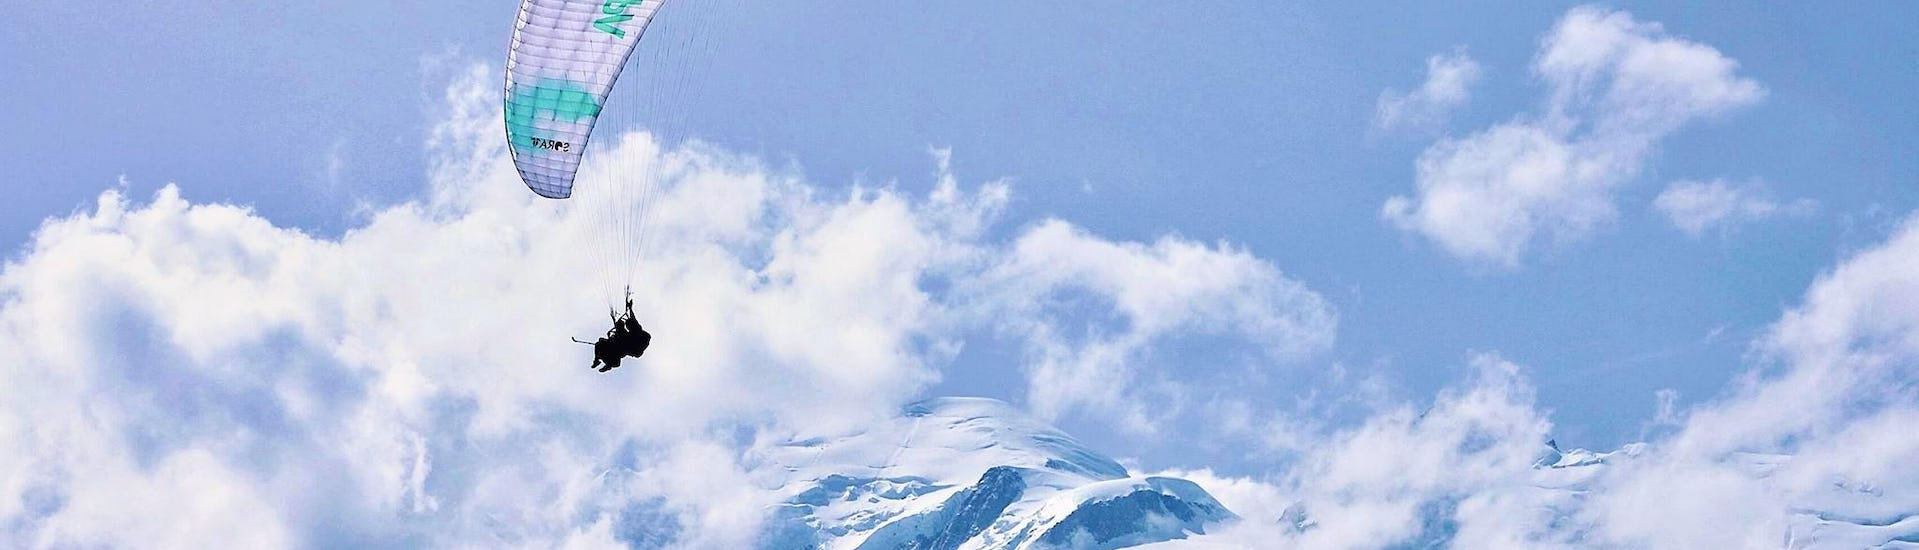 A paragliding pilot from Air Sports Chamonix is doing a paragliding flight above the Alps.